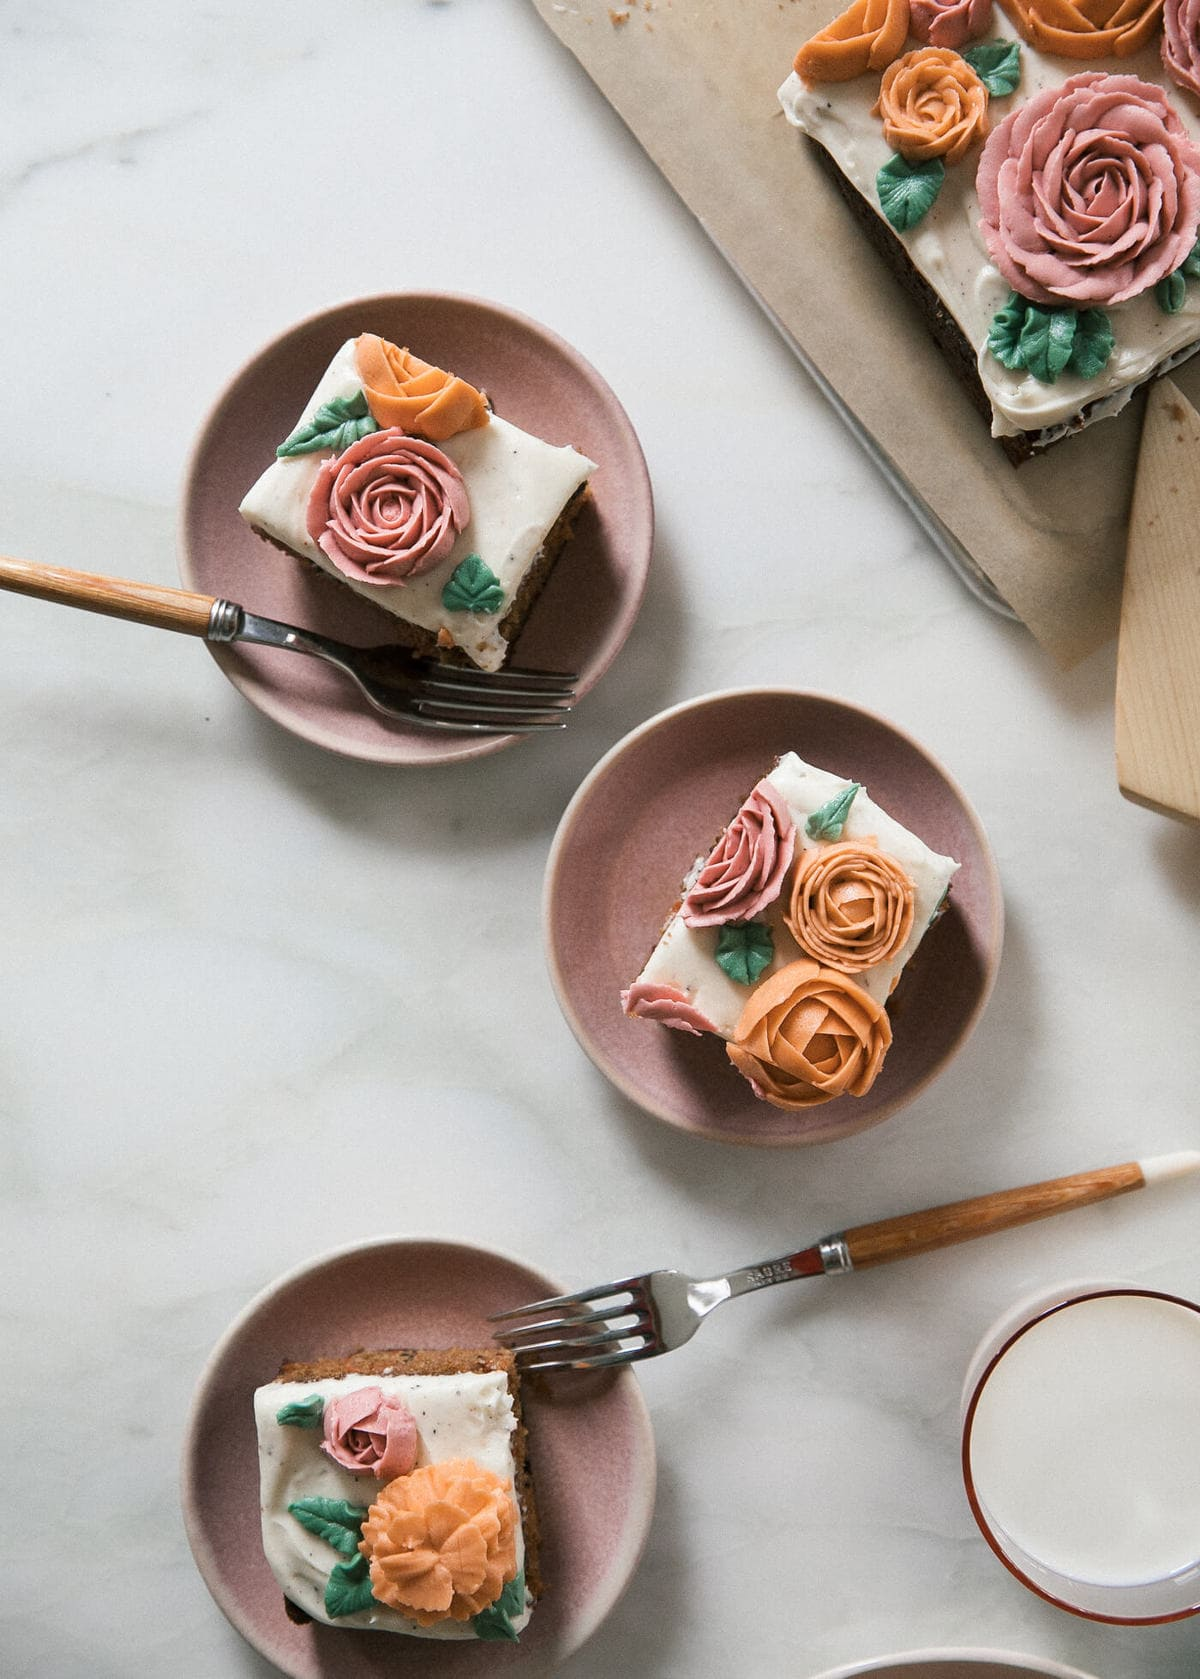 Carrot Sheet Cake with Buttercream Flowers